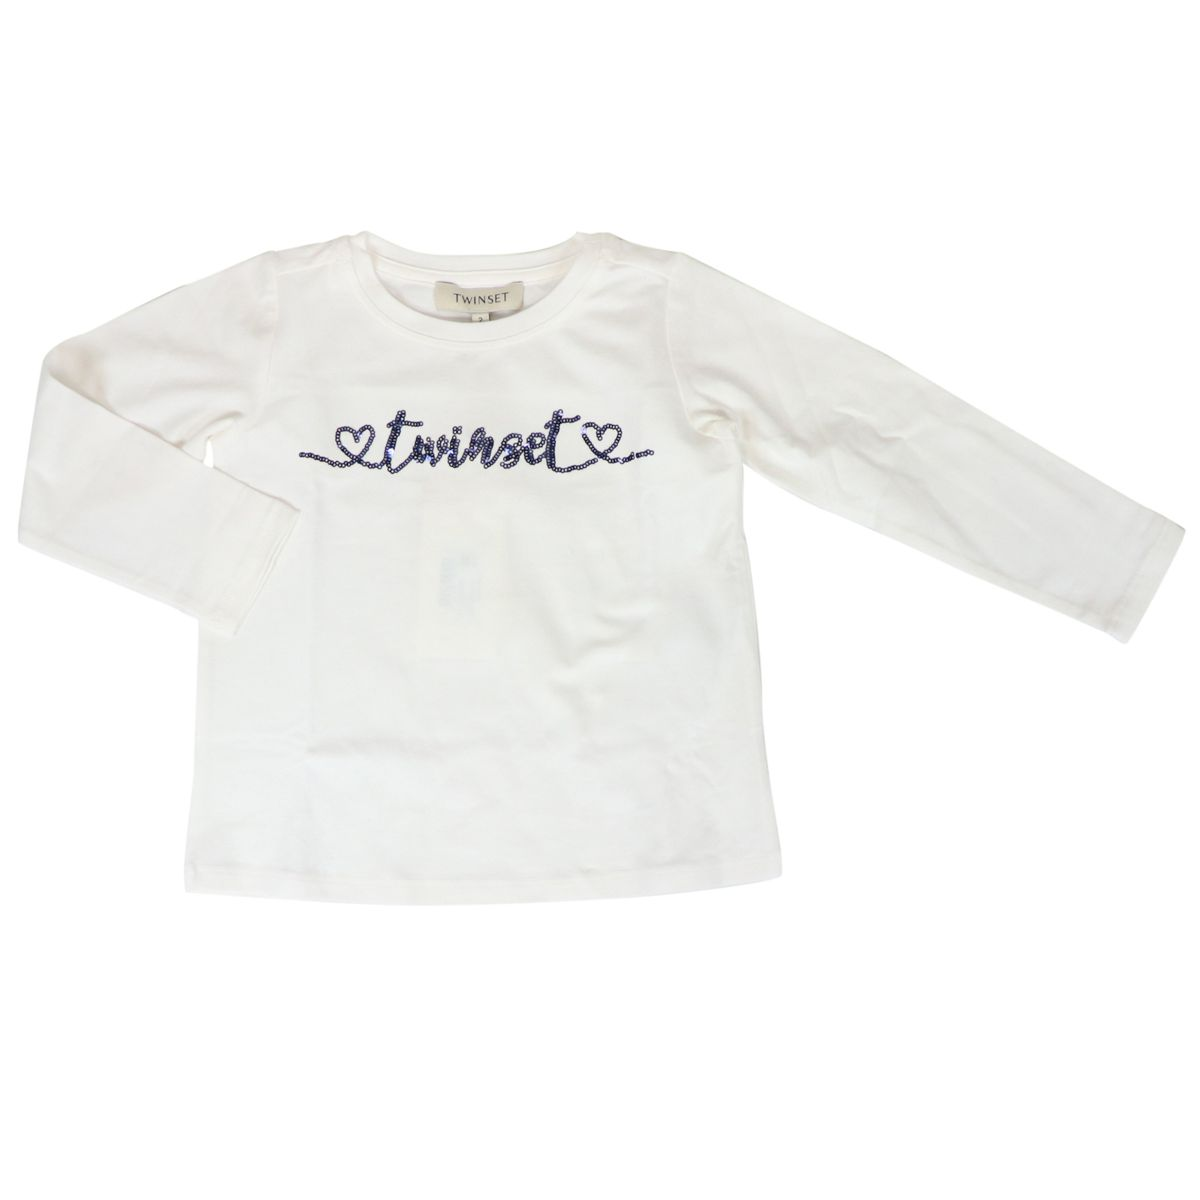 Cotton jersey sweater with contrast sequin logo White Twin-Set